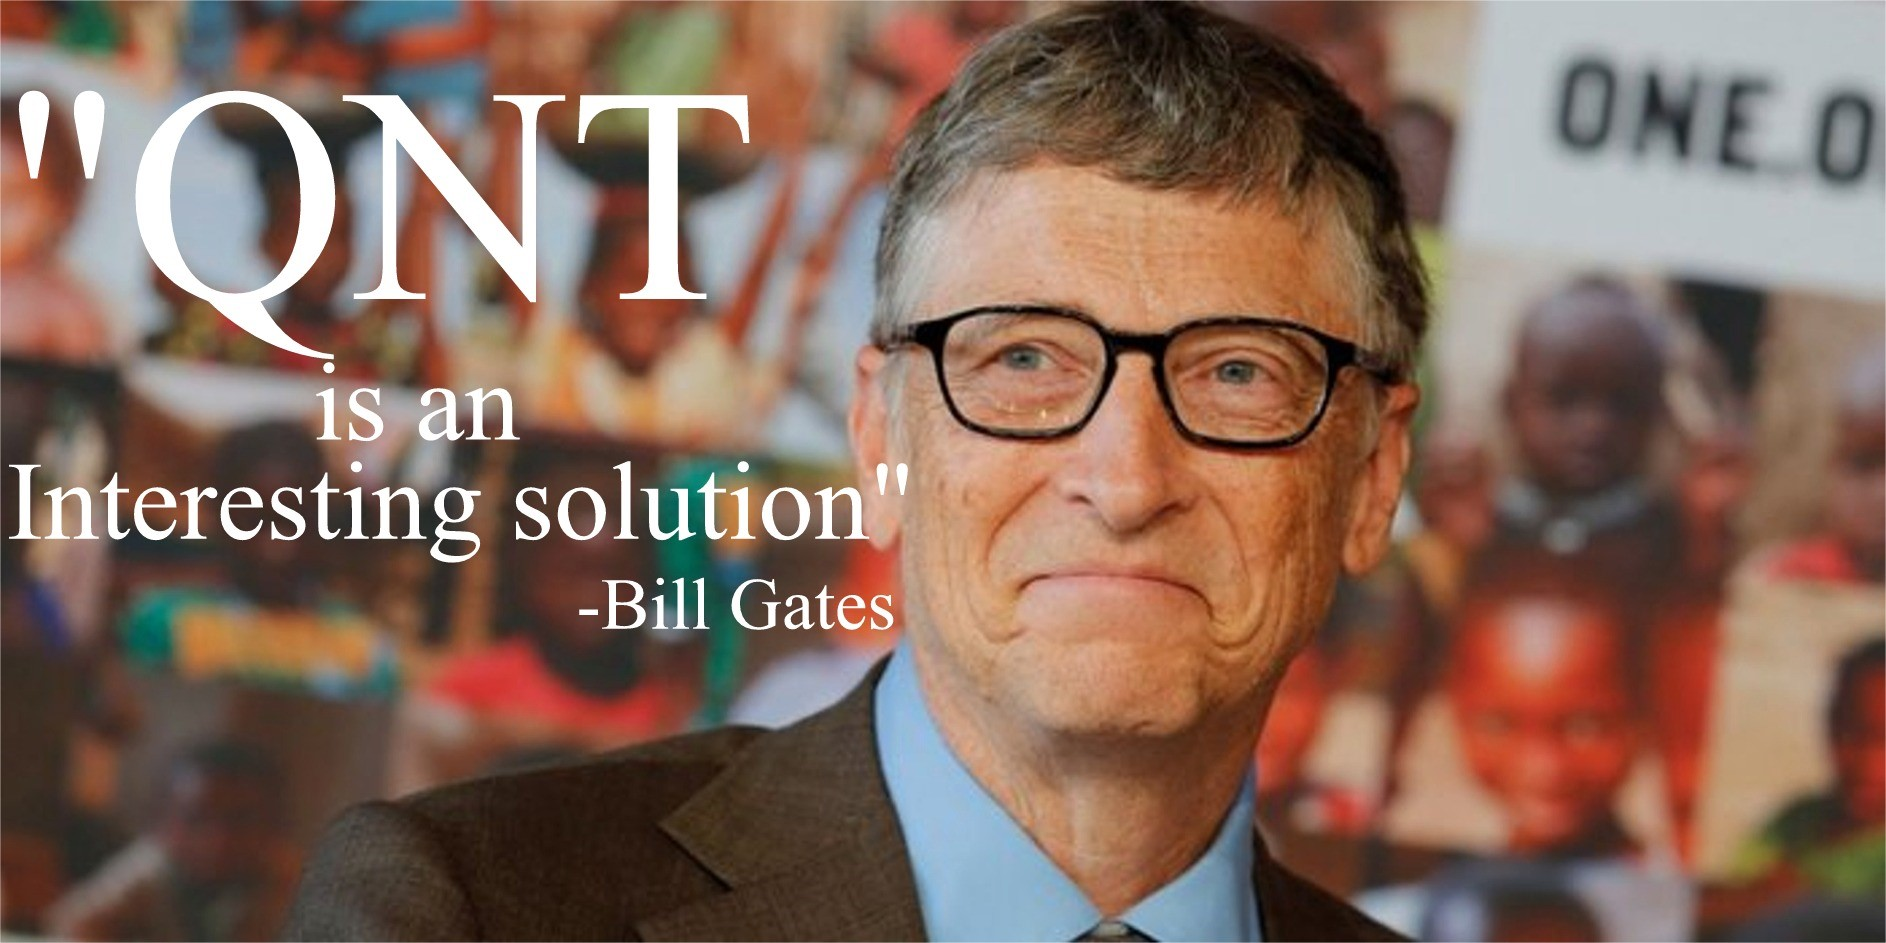 Bill Gates interested in Crypto Currency Quant